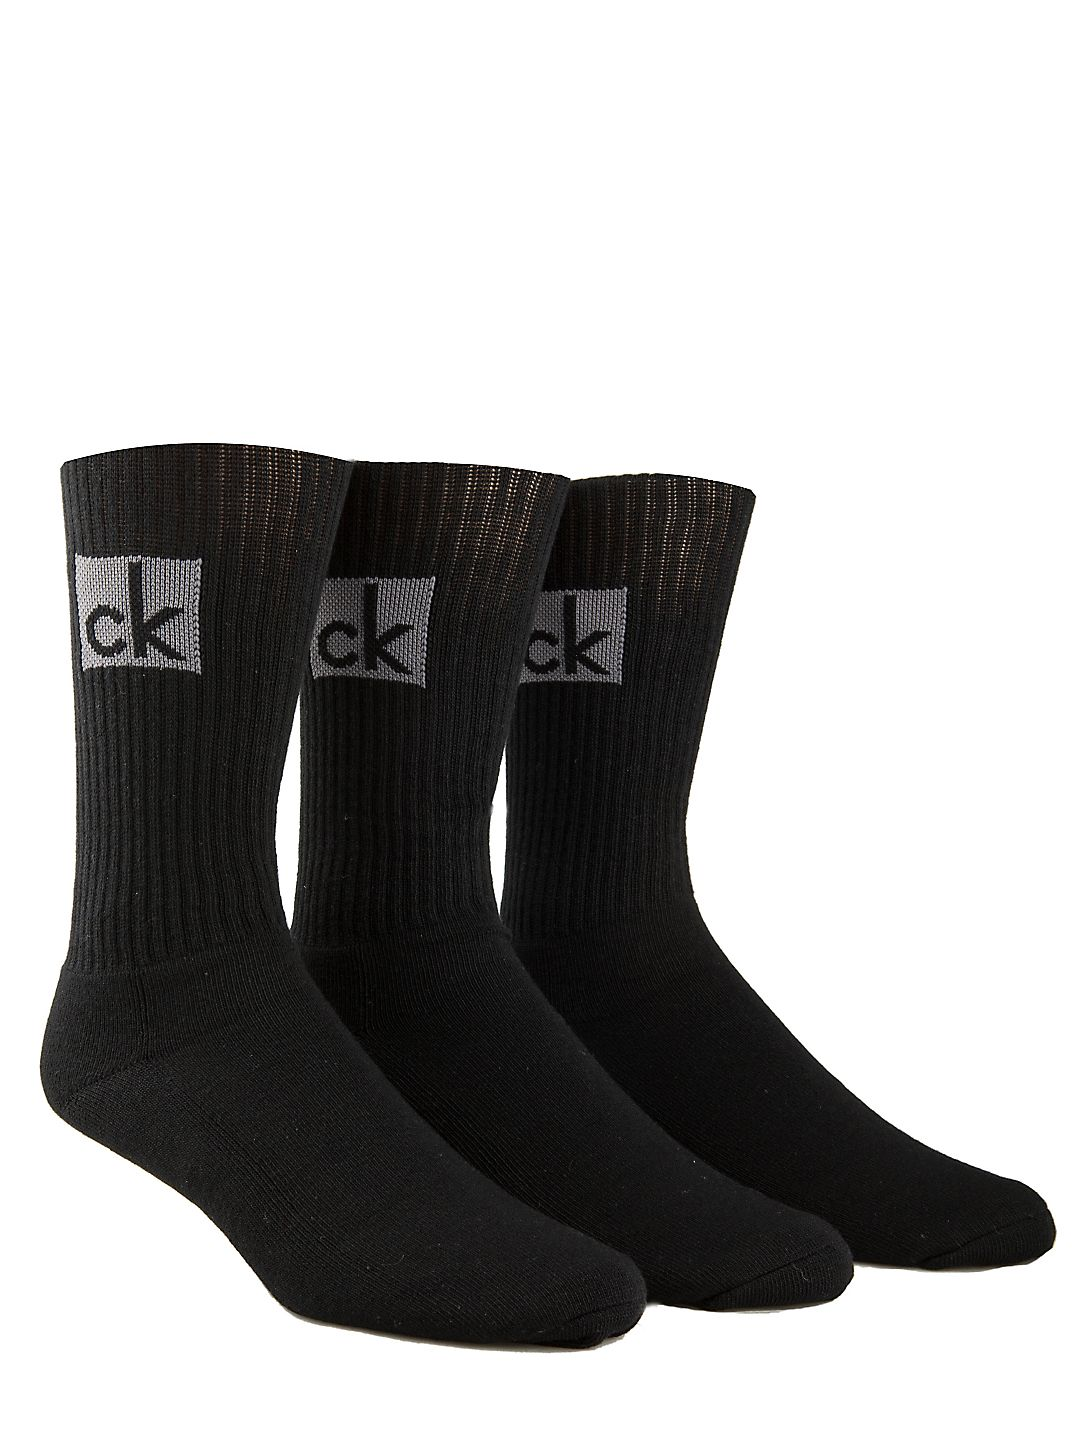 Knitted Cotton-Blend Socks - 3 Pack